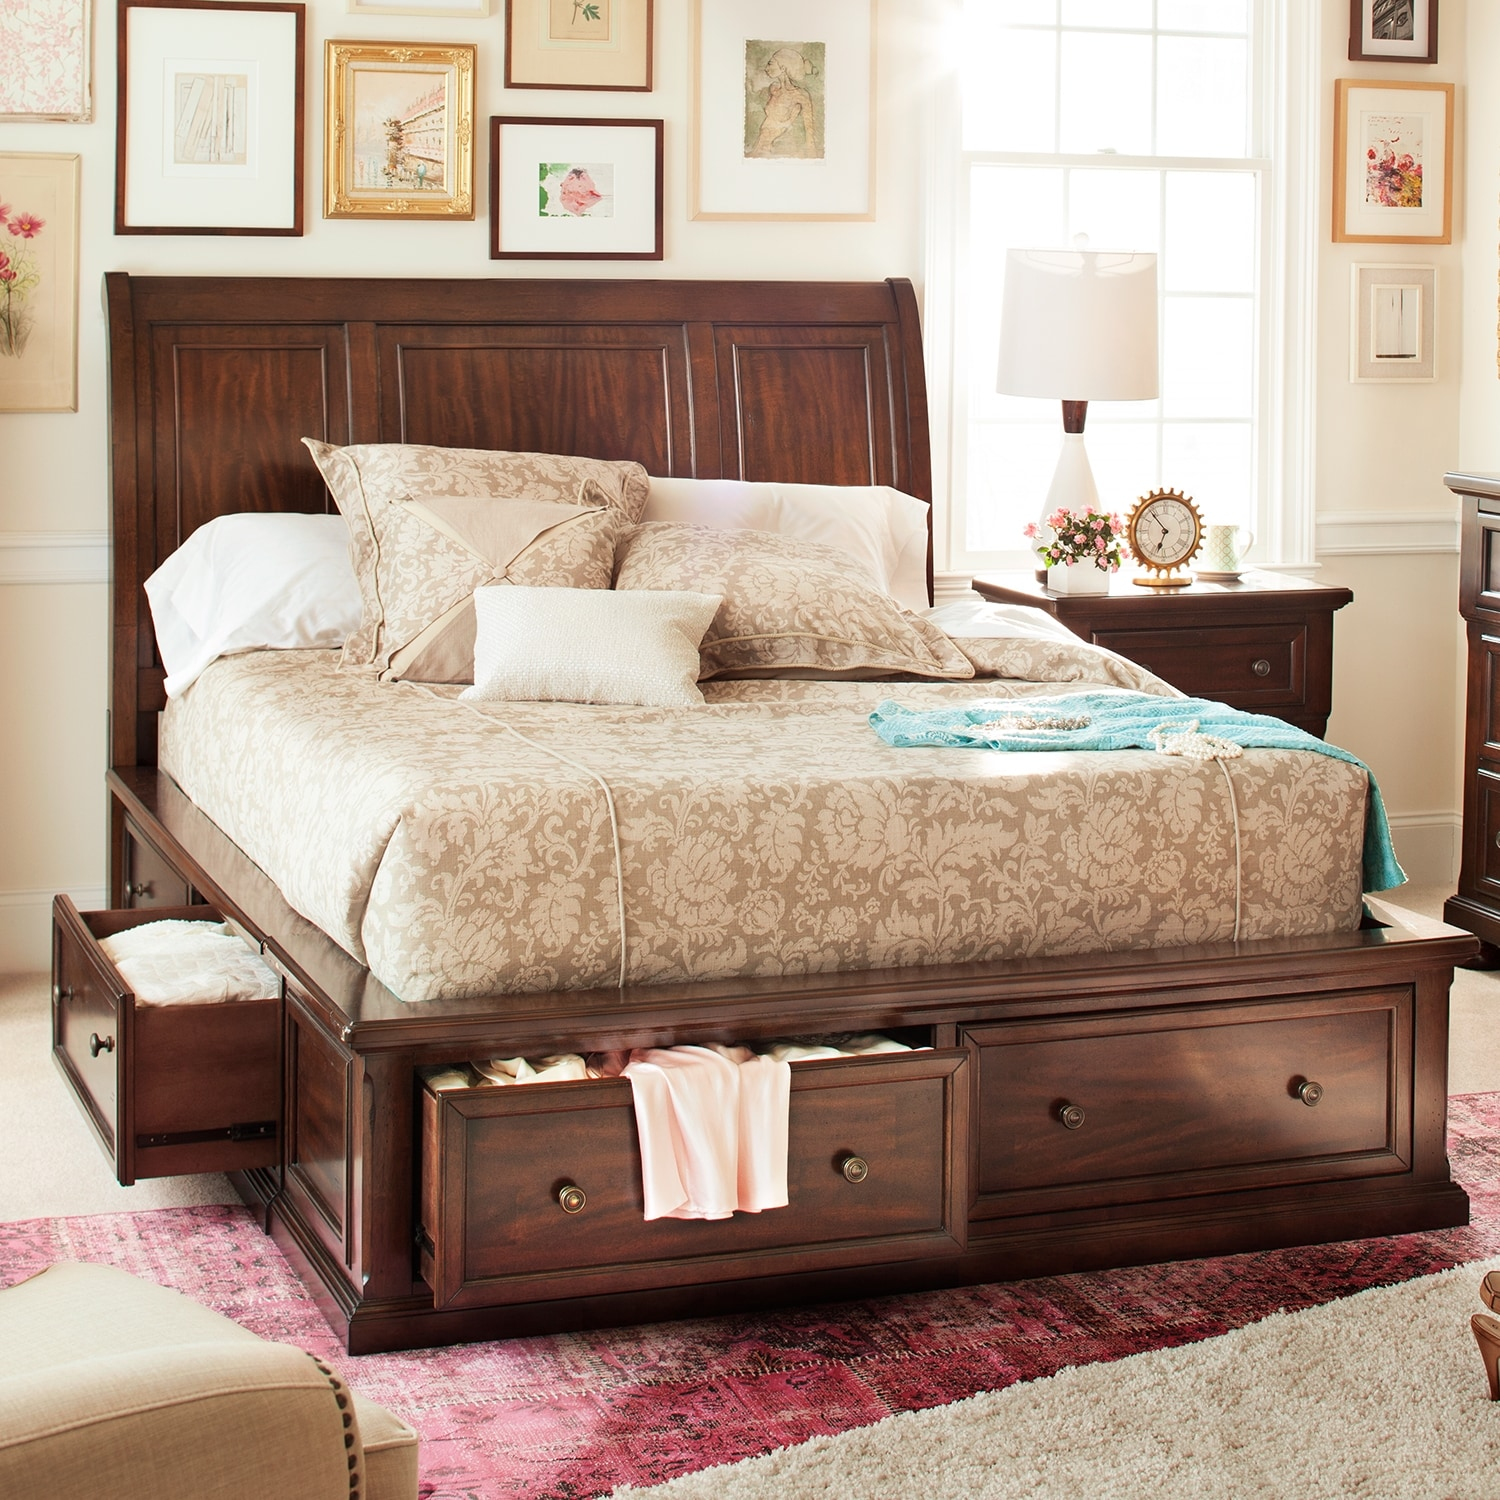 Hanover queen storage bed value city furniture for Bedroom furniture queen storage bed